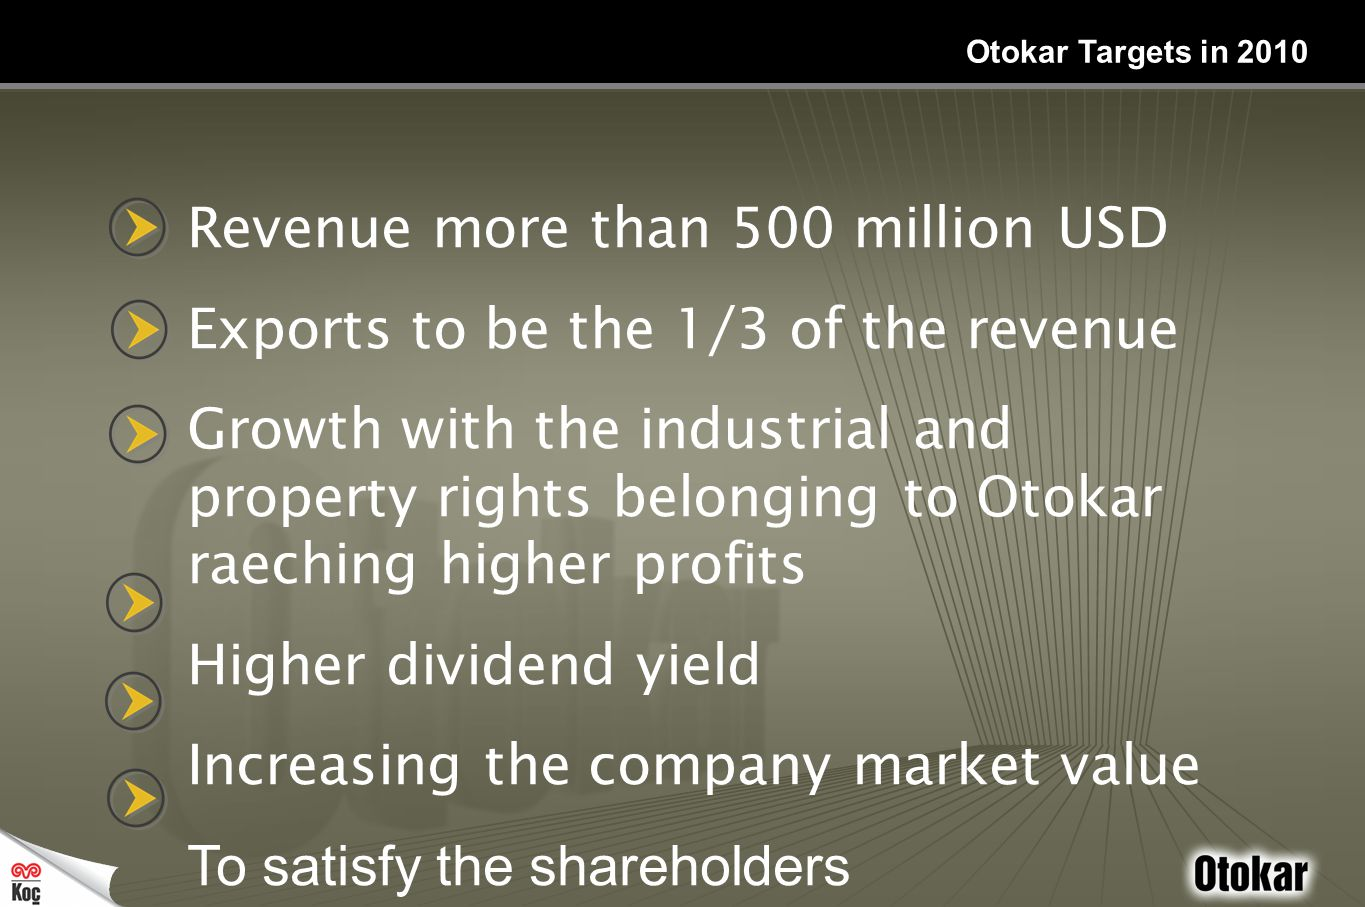 Revenue more than 500 million USD Exports to be the 1/3 of the revenue Growth with the industrial and property rights belonging to Otokar raeching higher profits Higher dividend yield Increasing the company market value To satisfy the shareholders Otokar Targets in 2010